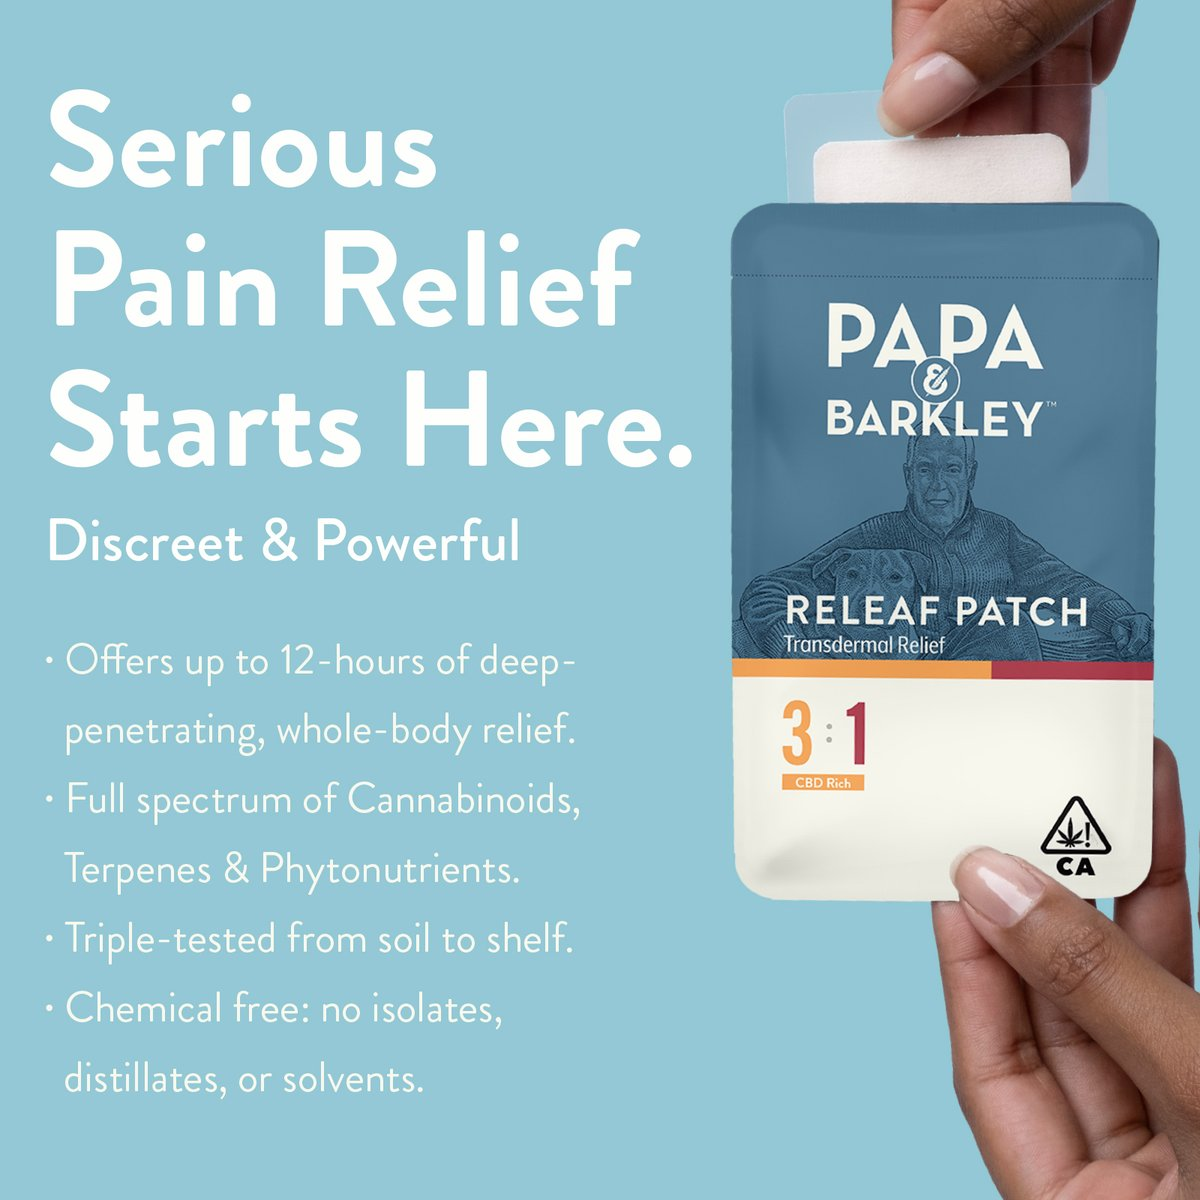 Sore back or shoulders? Our Releaf Patches might be just what you need. Our THC patches offer up to 12 hours of measured and effective whole-body comfort. https://t.co/AKw4IgSkzk